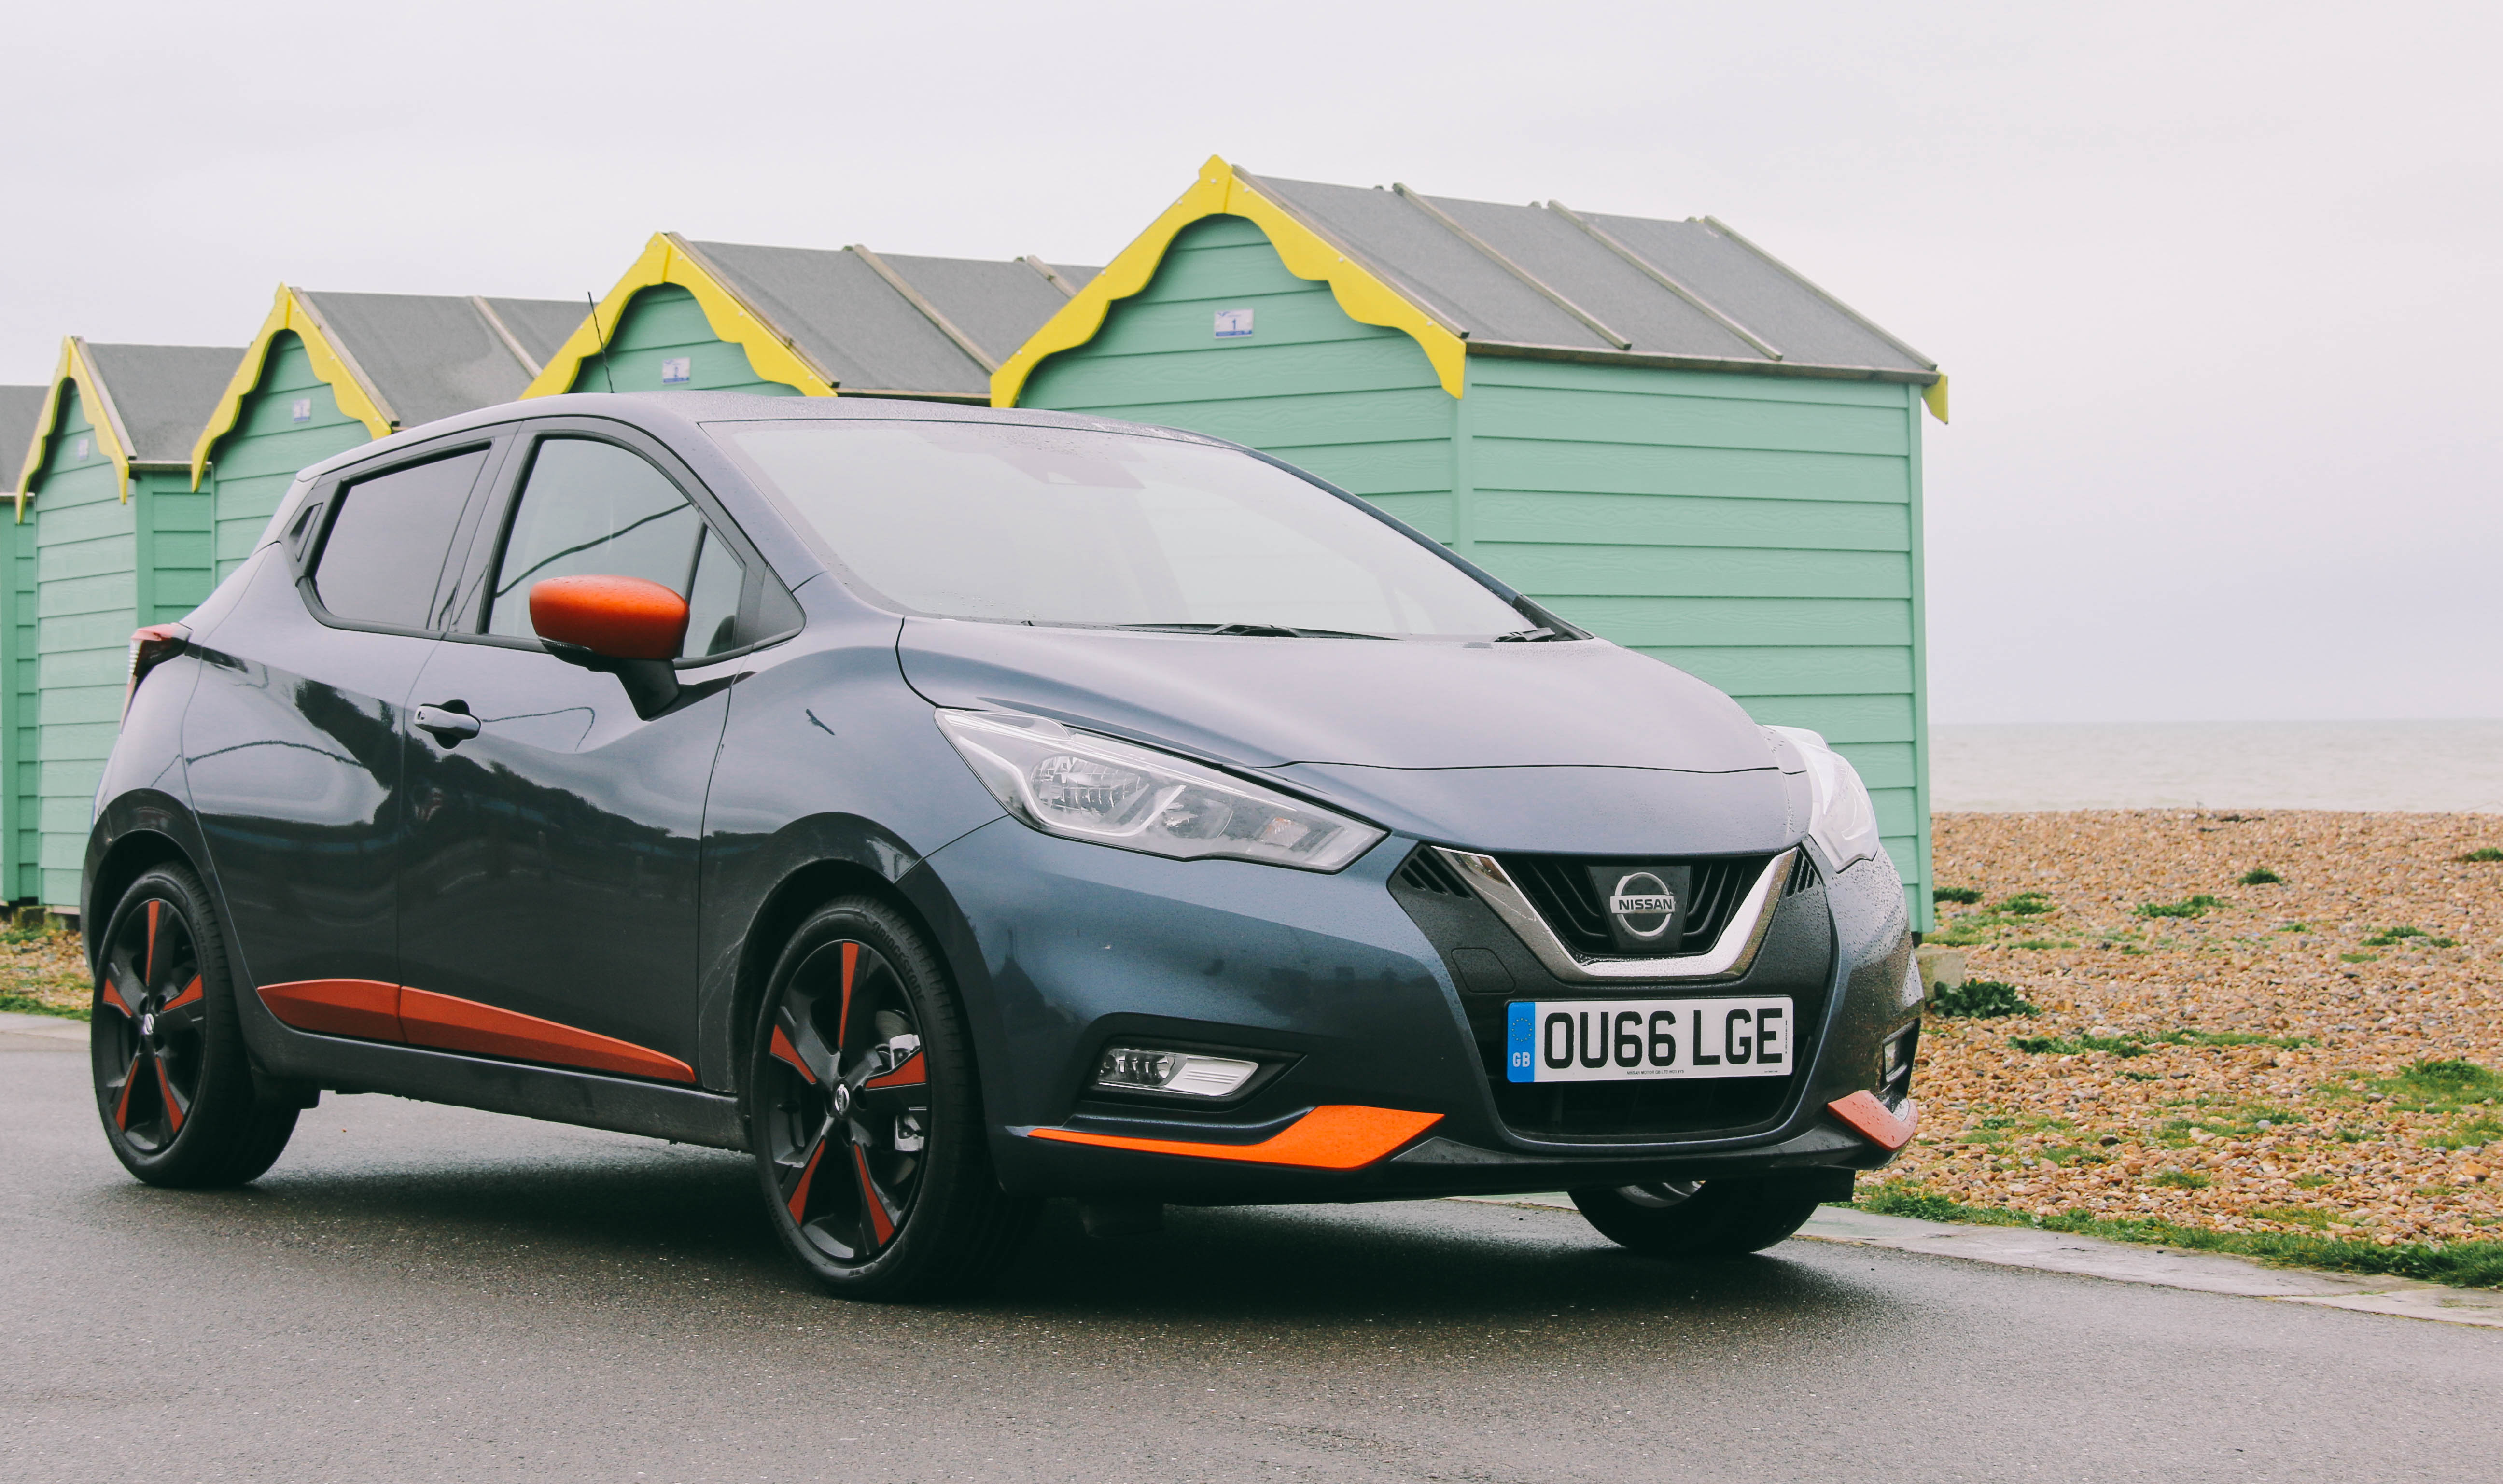 Launching the Revolutionary New Nissan Micra